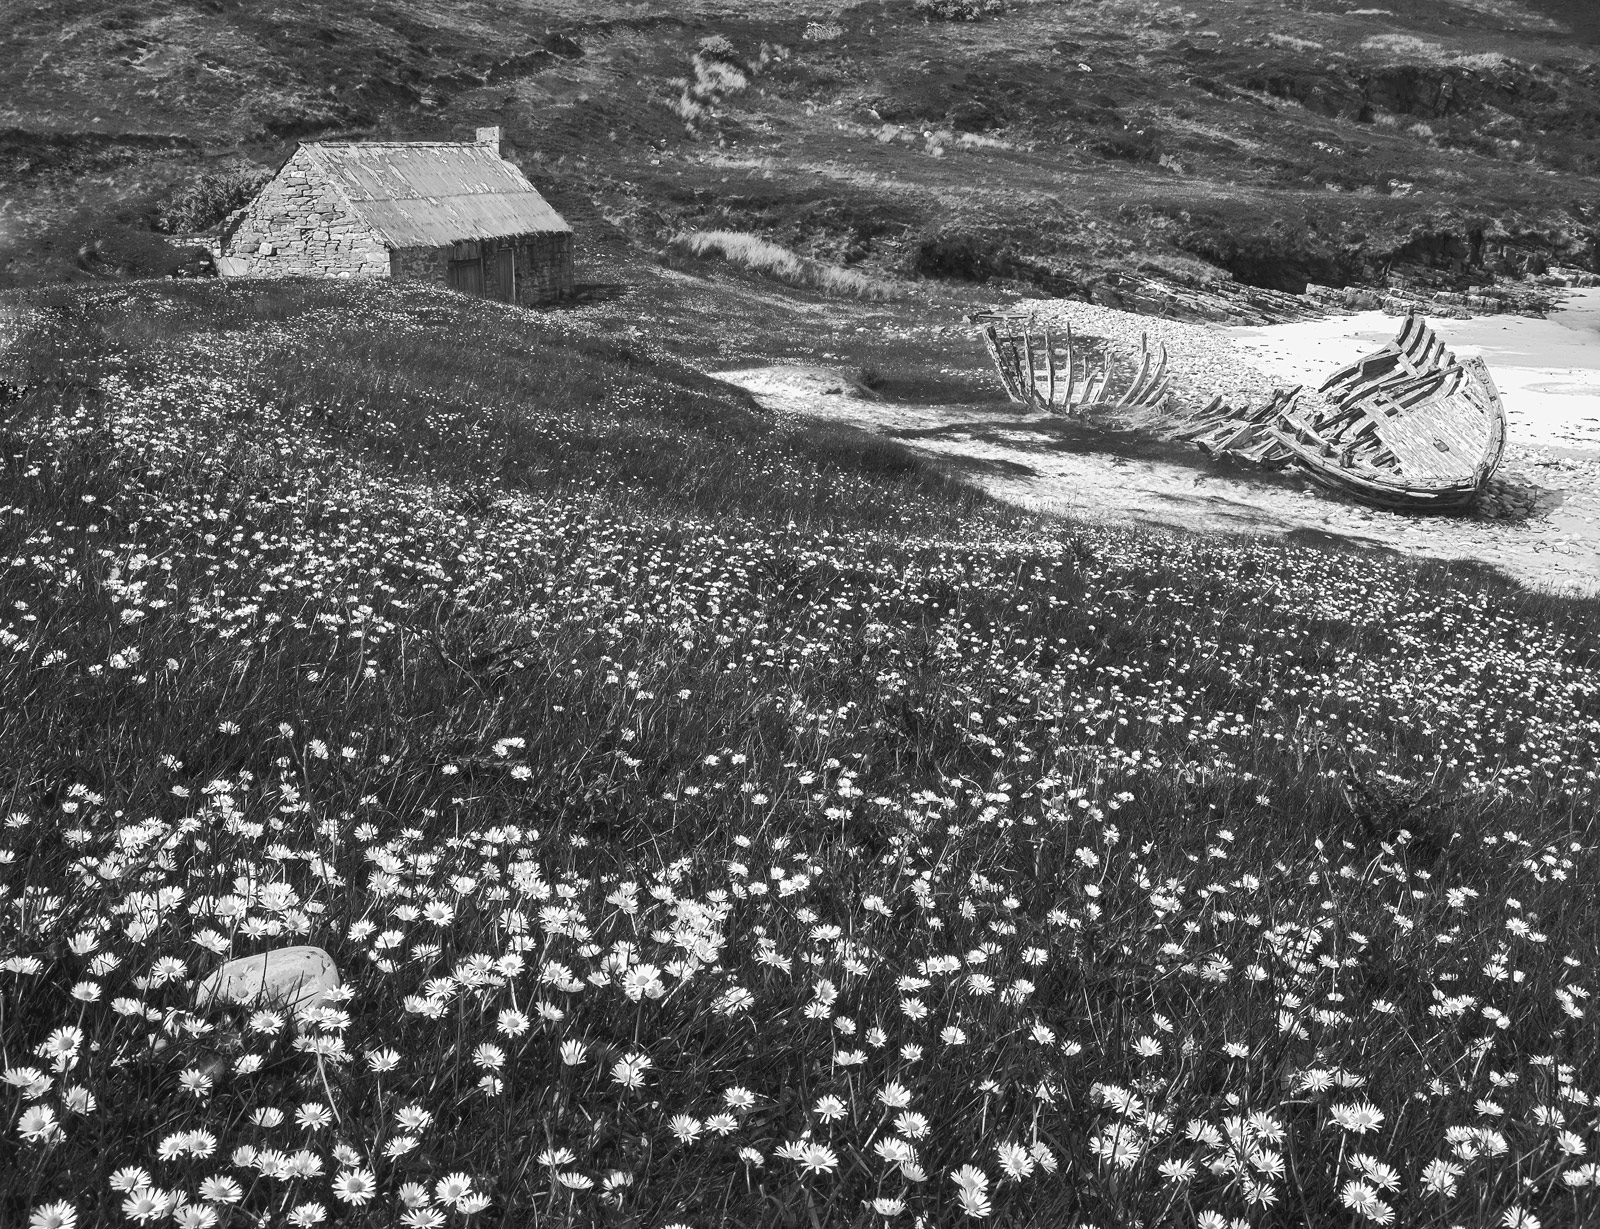 Nodding white daisies growing in an endless blizzard of summer flowers roll over the grassy slopes down to the shore of gorgeous...